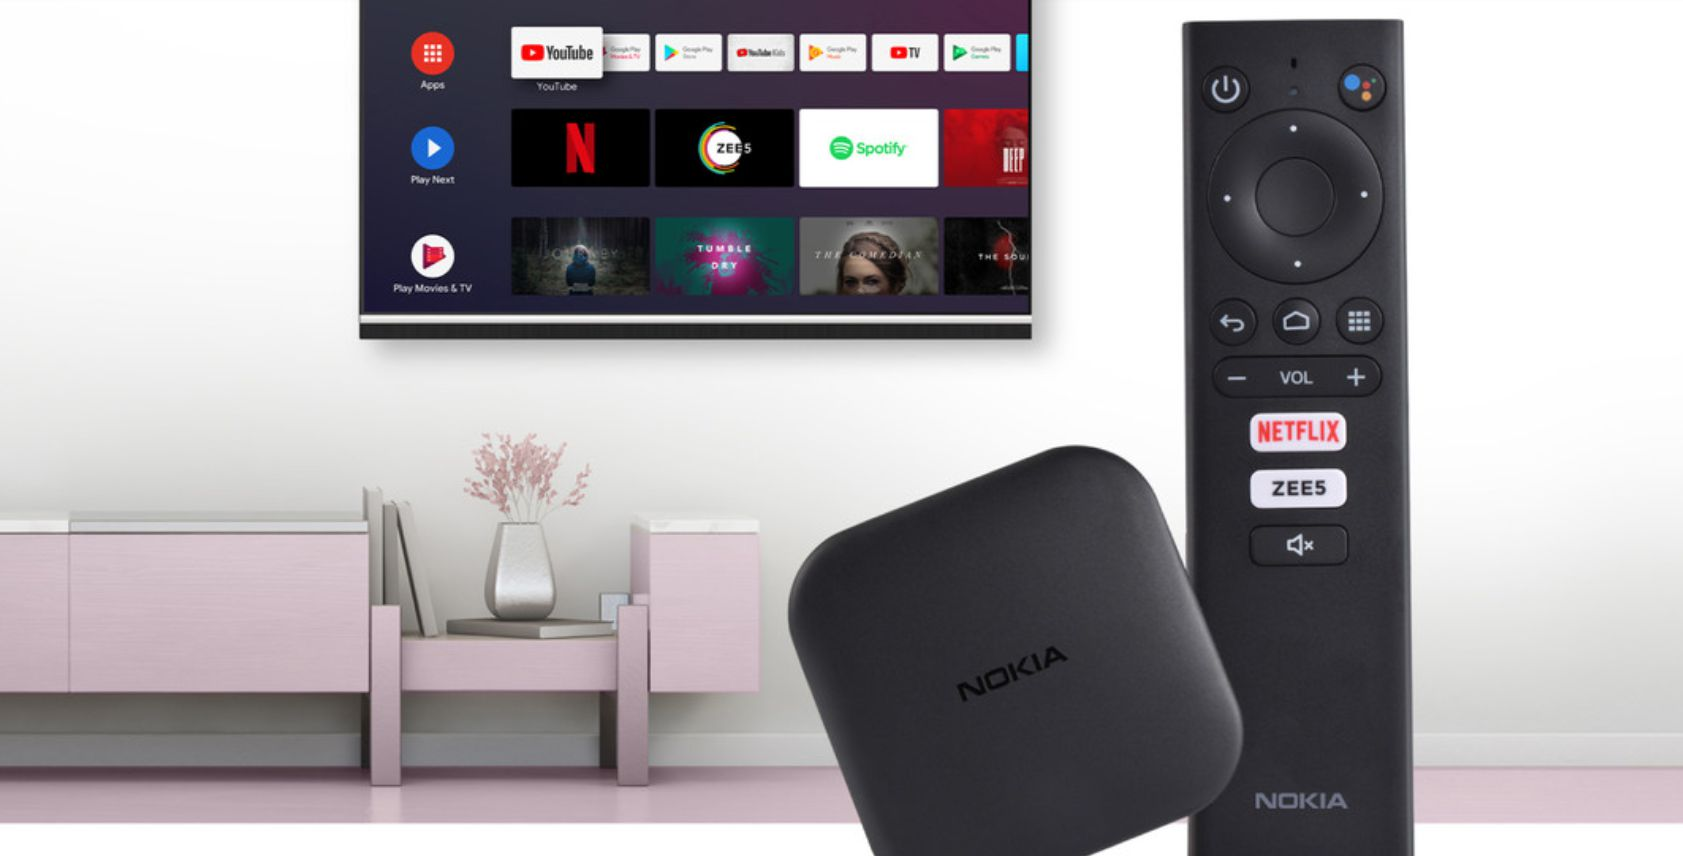 Nokia launches new Media Streamer to rival Amazon Fire TV Stick: Price, features